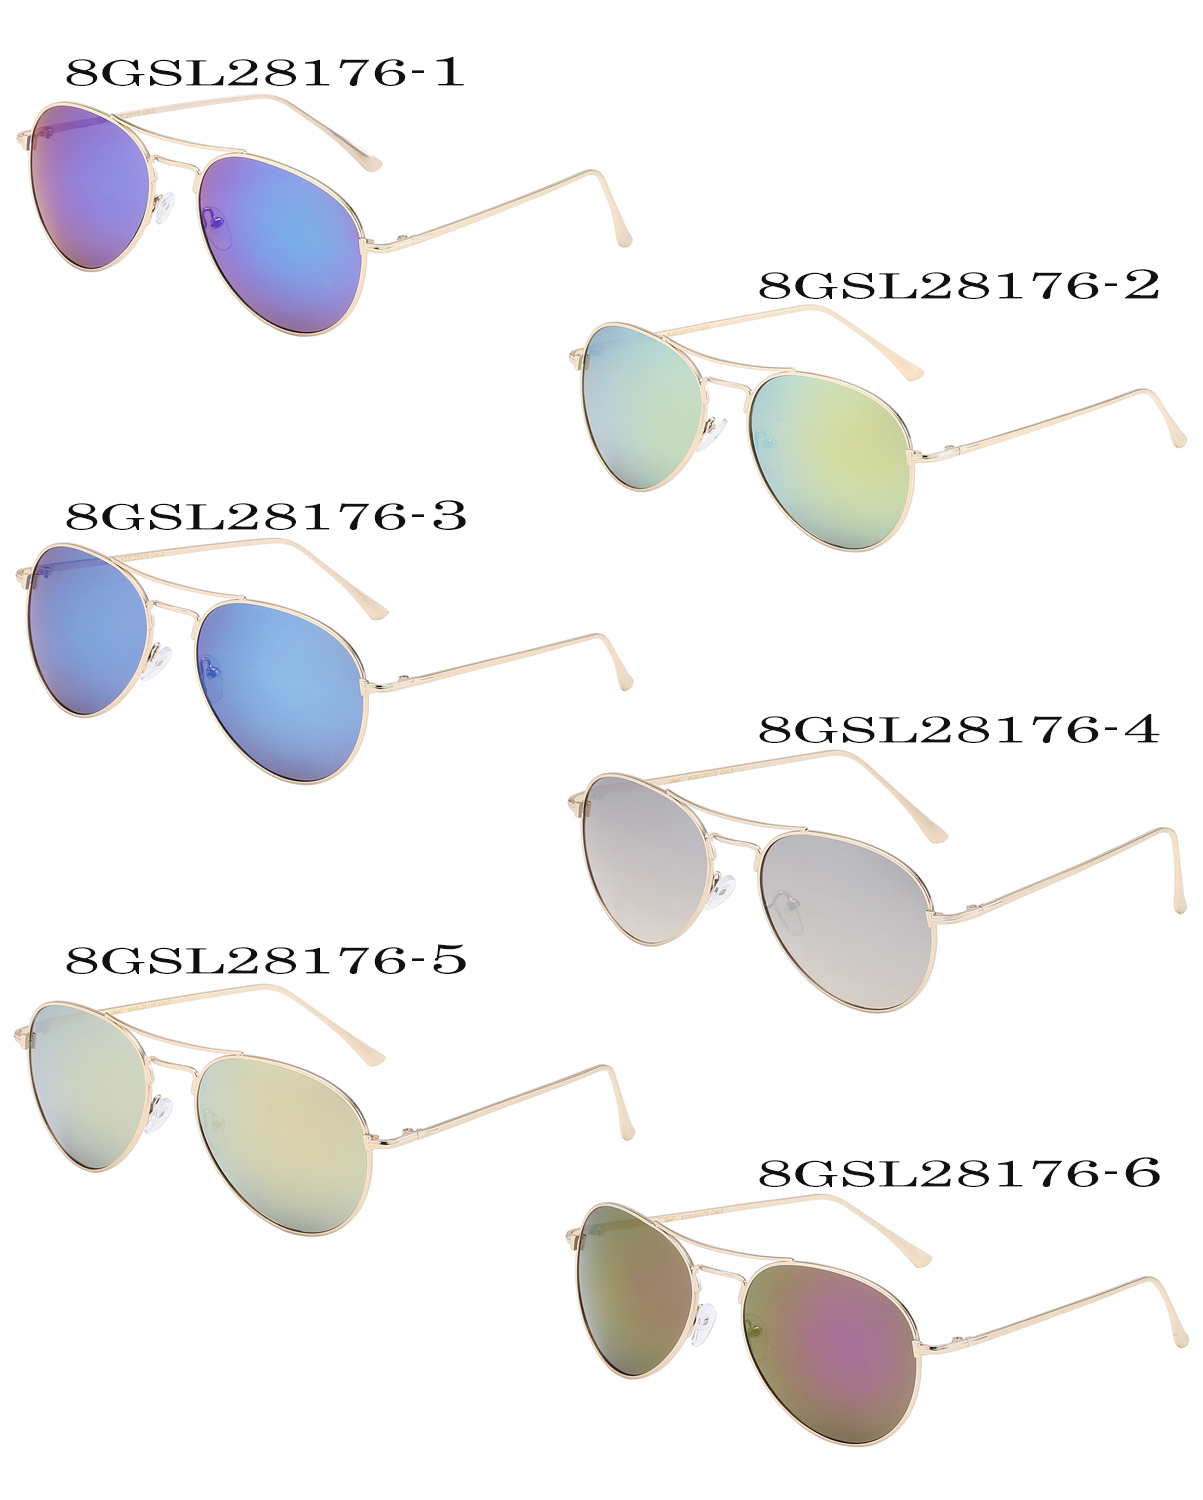 8GSL28176-(SET-12PCS)-wholesale-sunglasses-uva-uvb-block-uv400-aviator-pilot-metal-frame-mirror-lens-gold-air-force-unsex(0).jpg